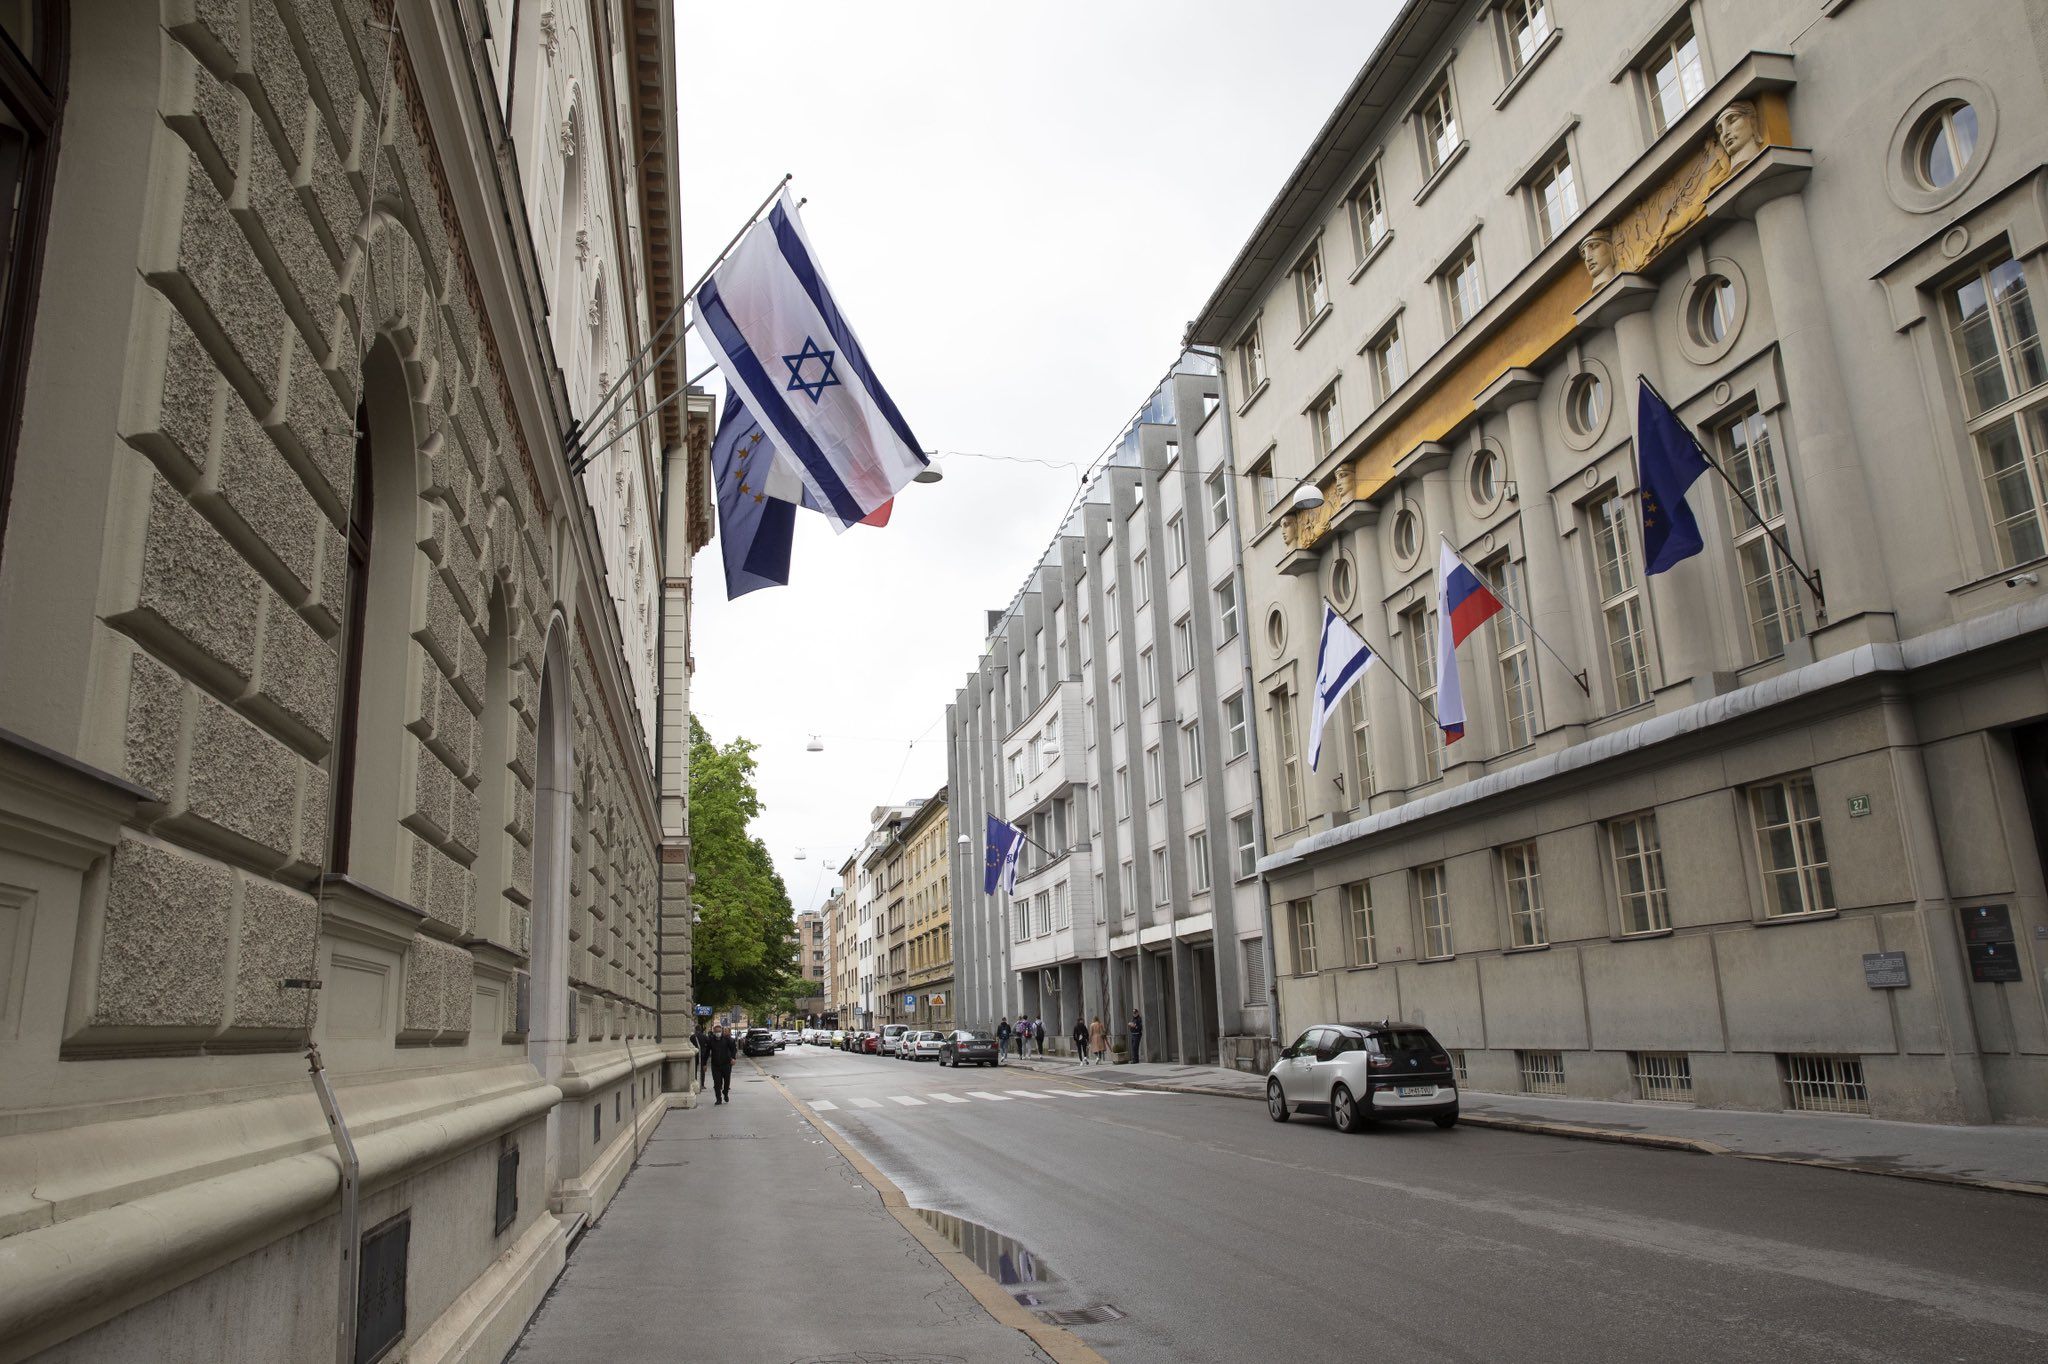 Slovenia: Muslim community protest against Israel flag on the Government building